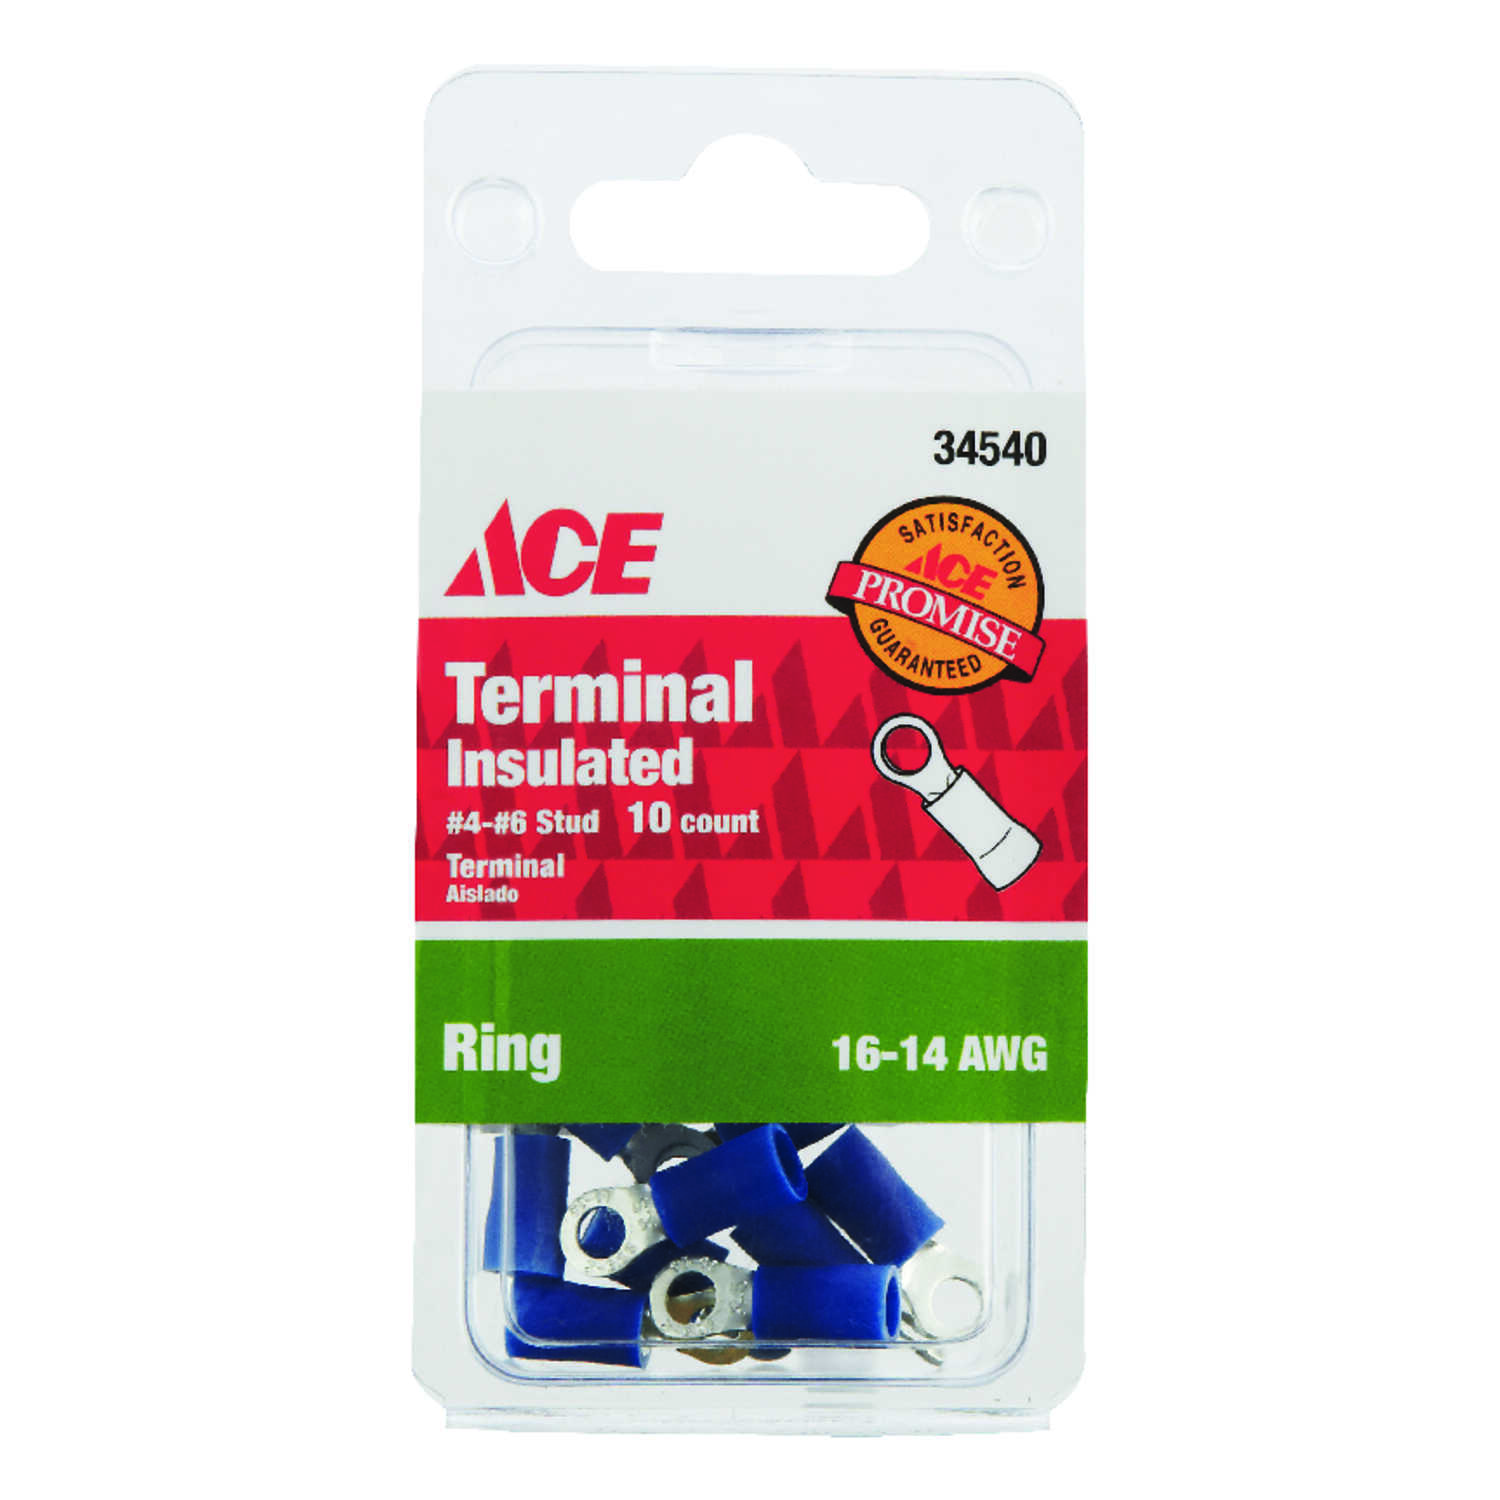 Ace  Insulated Wire  16-14 AWG Ring Terminal  10